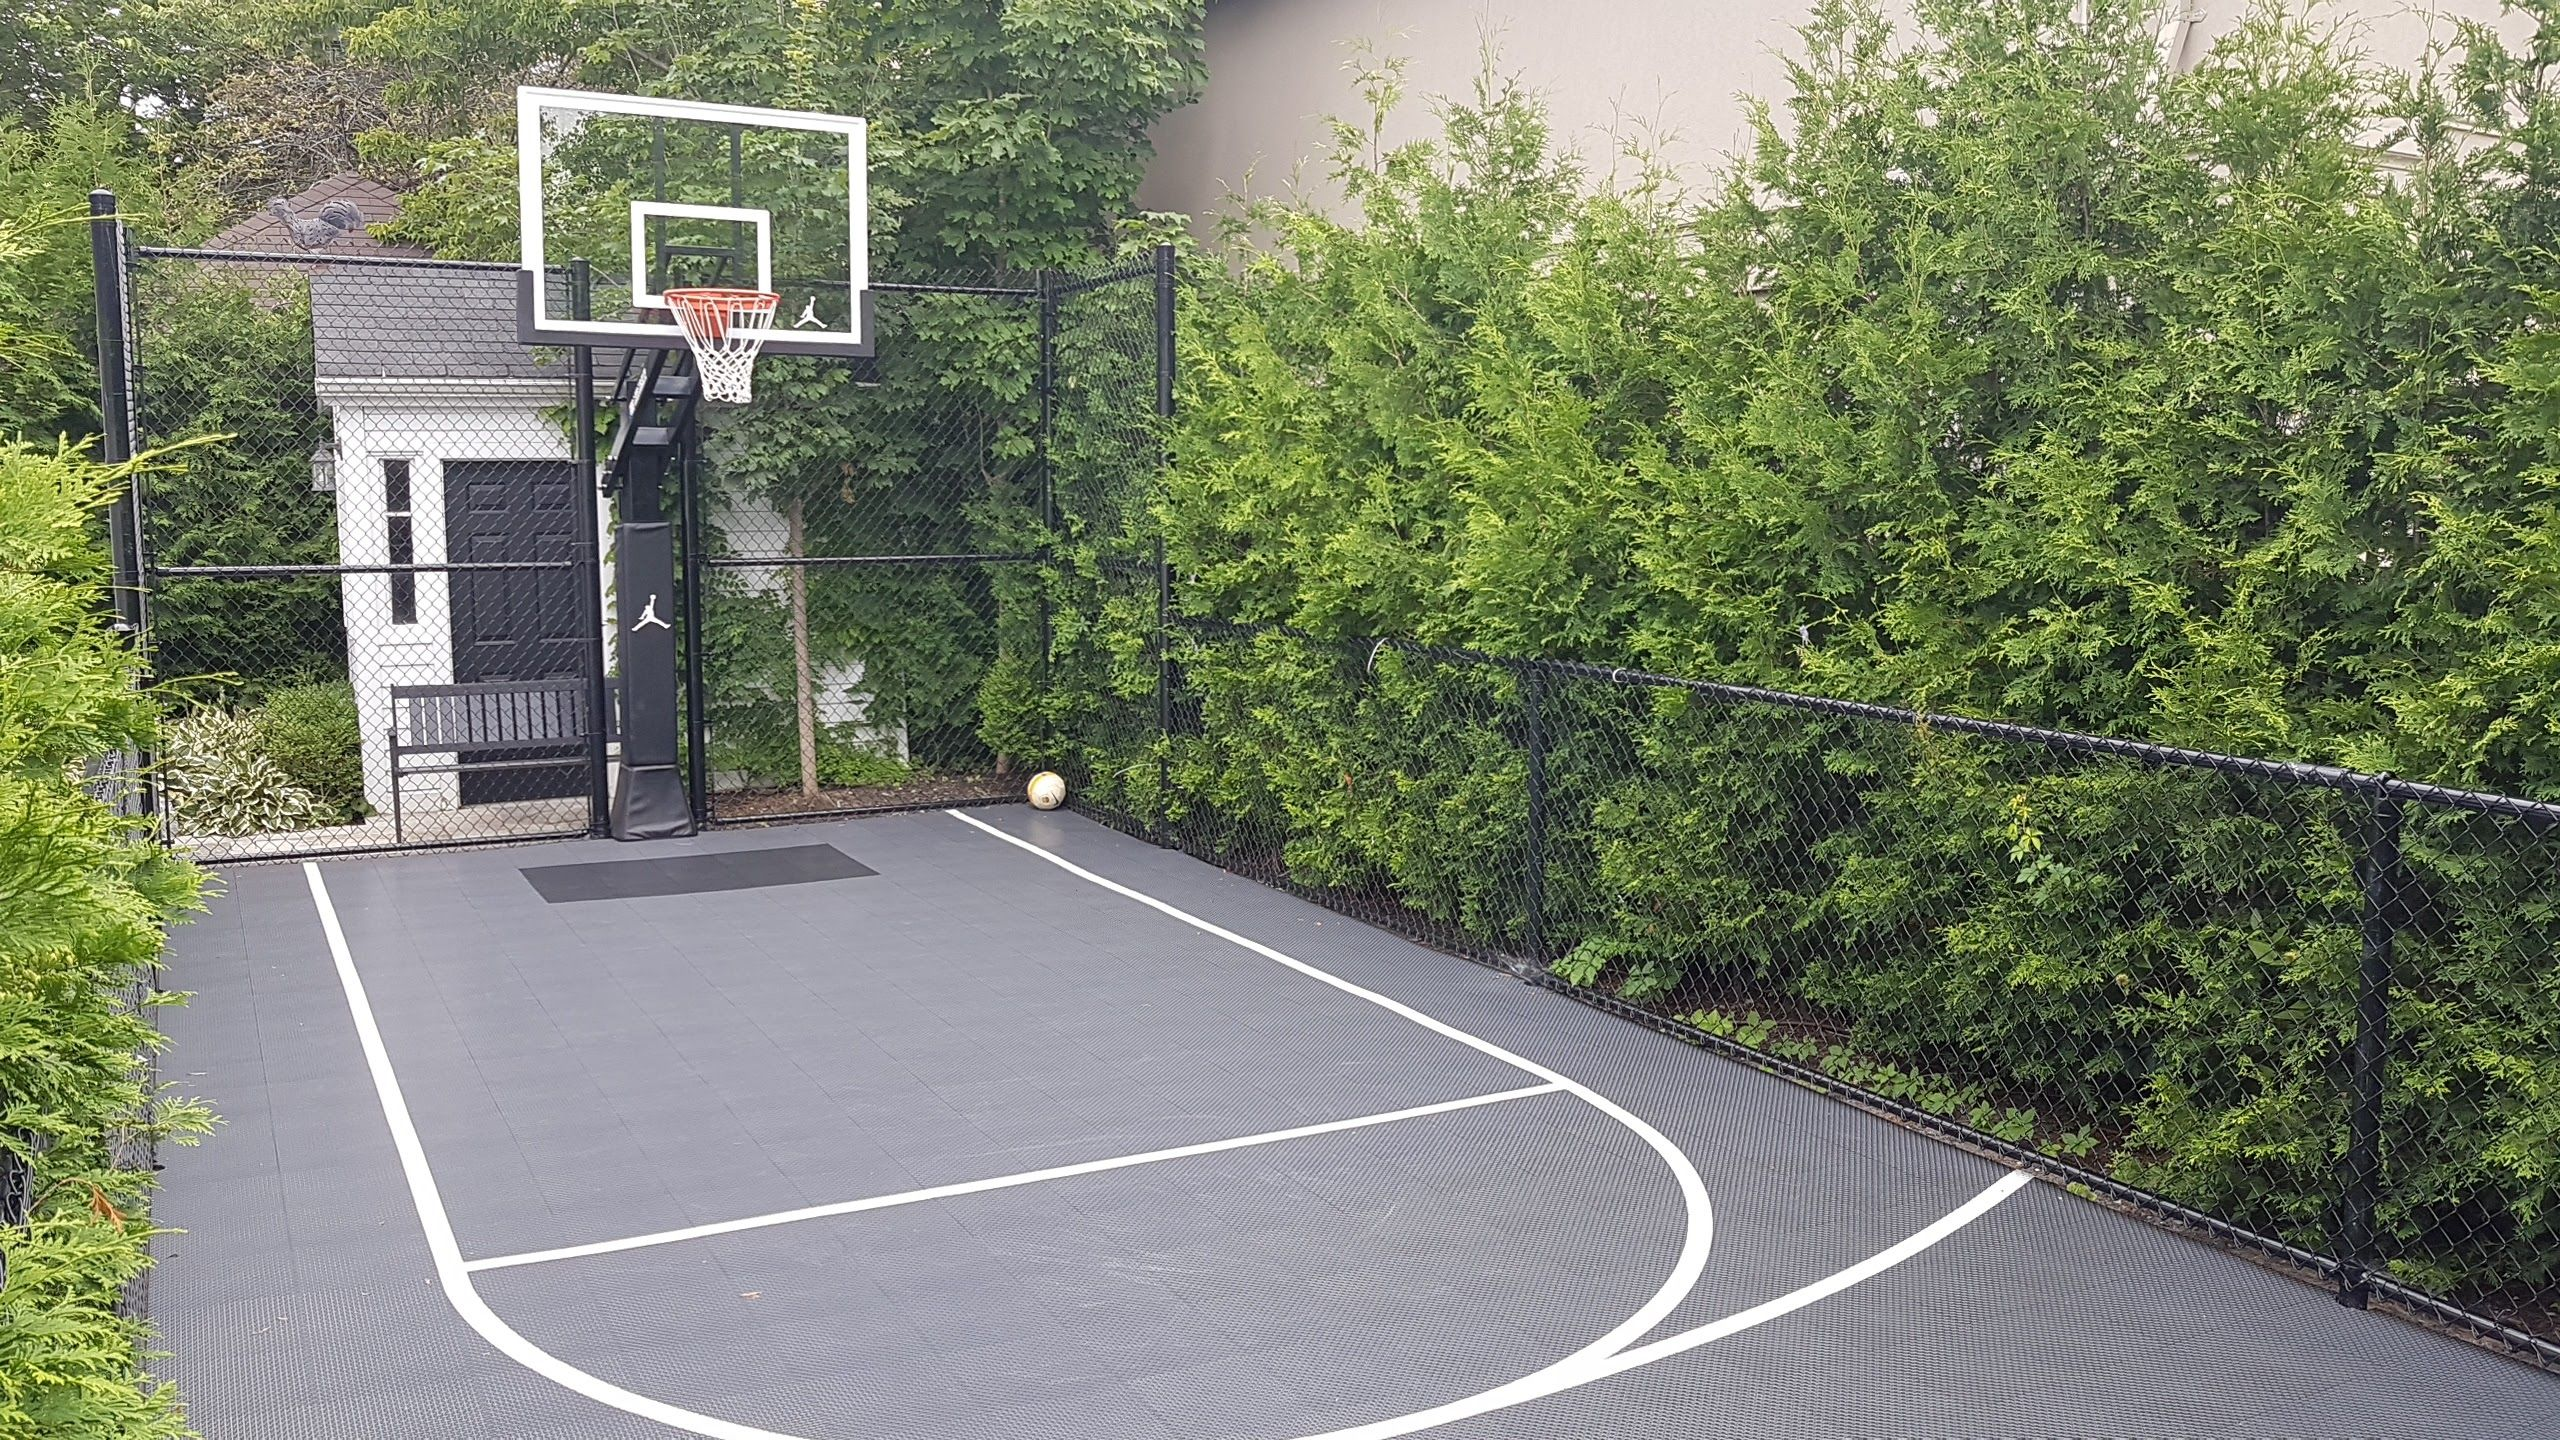 15 X 37 Basketball Court Makes Great Use Of A Side Yard That Would Otherwise Go Unused Backyard Court Basketball Court Backyard Outdoor Basketball Court